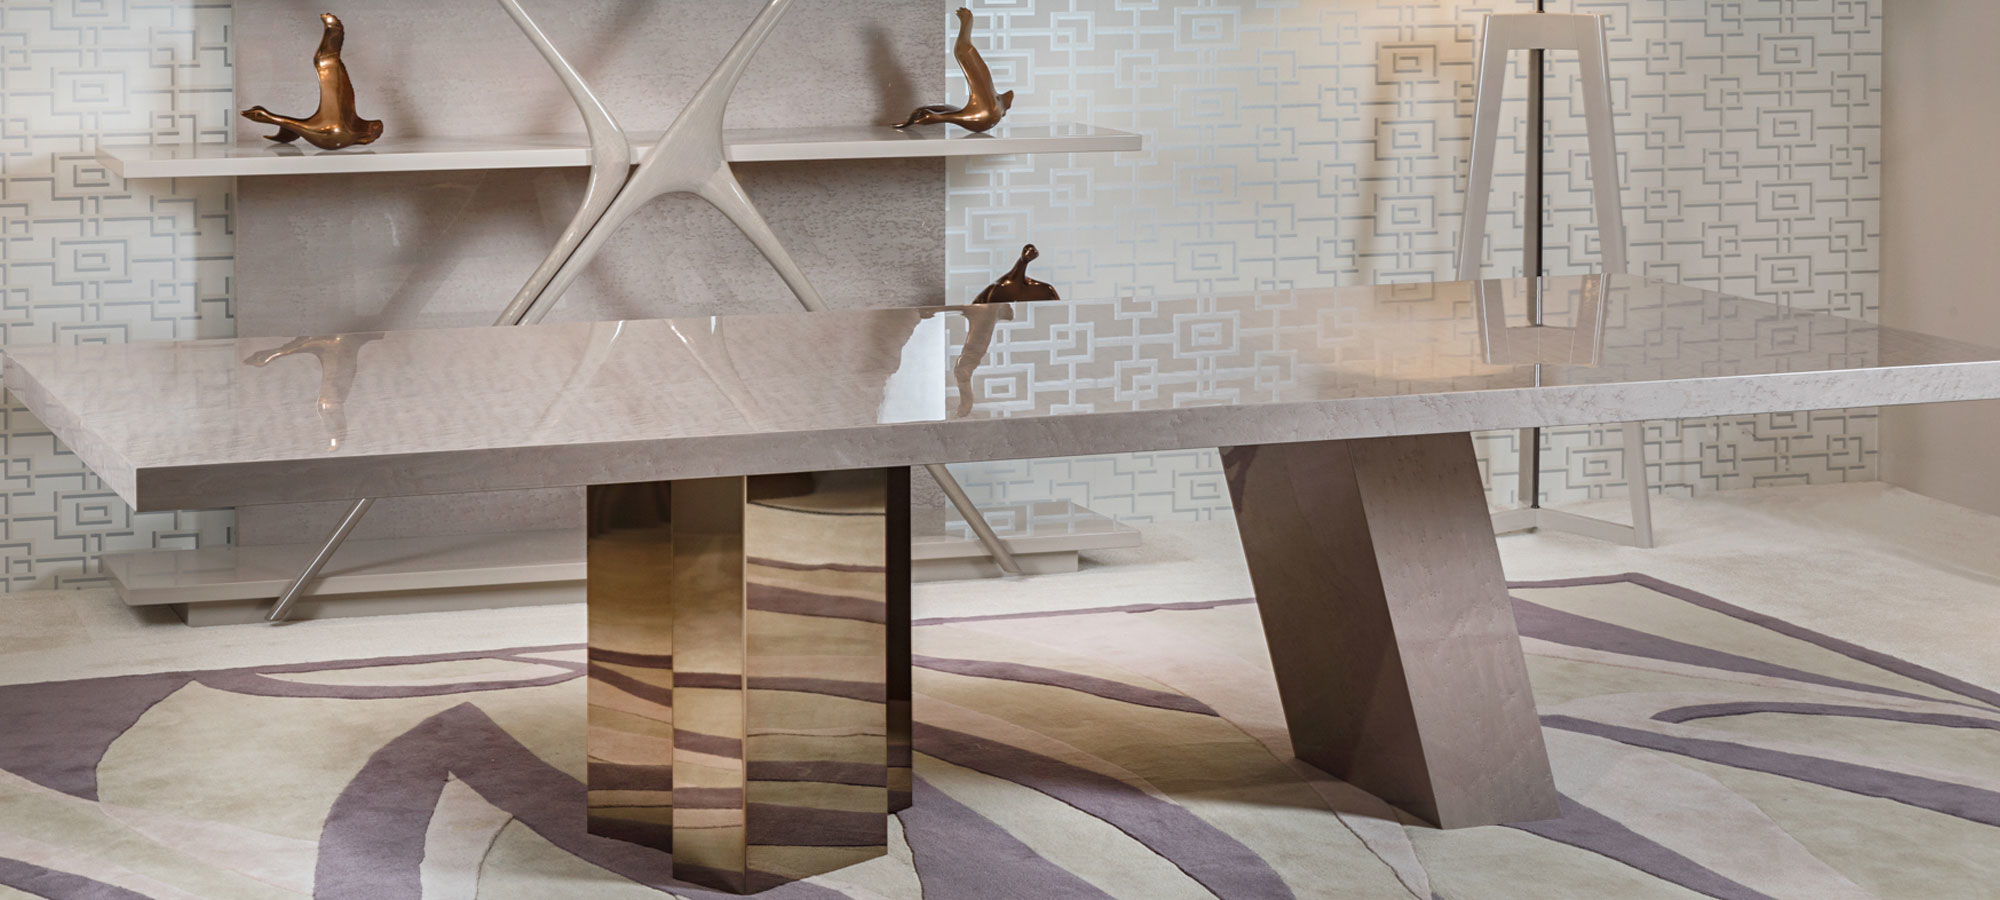 Opera-constantini-pietro-salone-del-mobile-imported-italian-furniture-dining-table